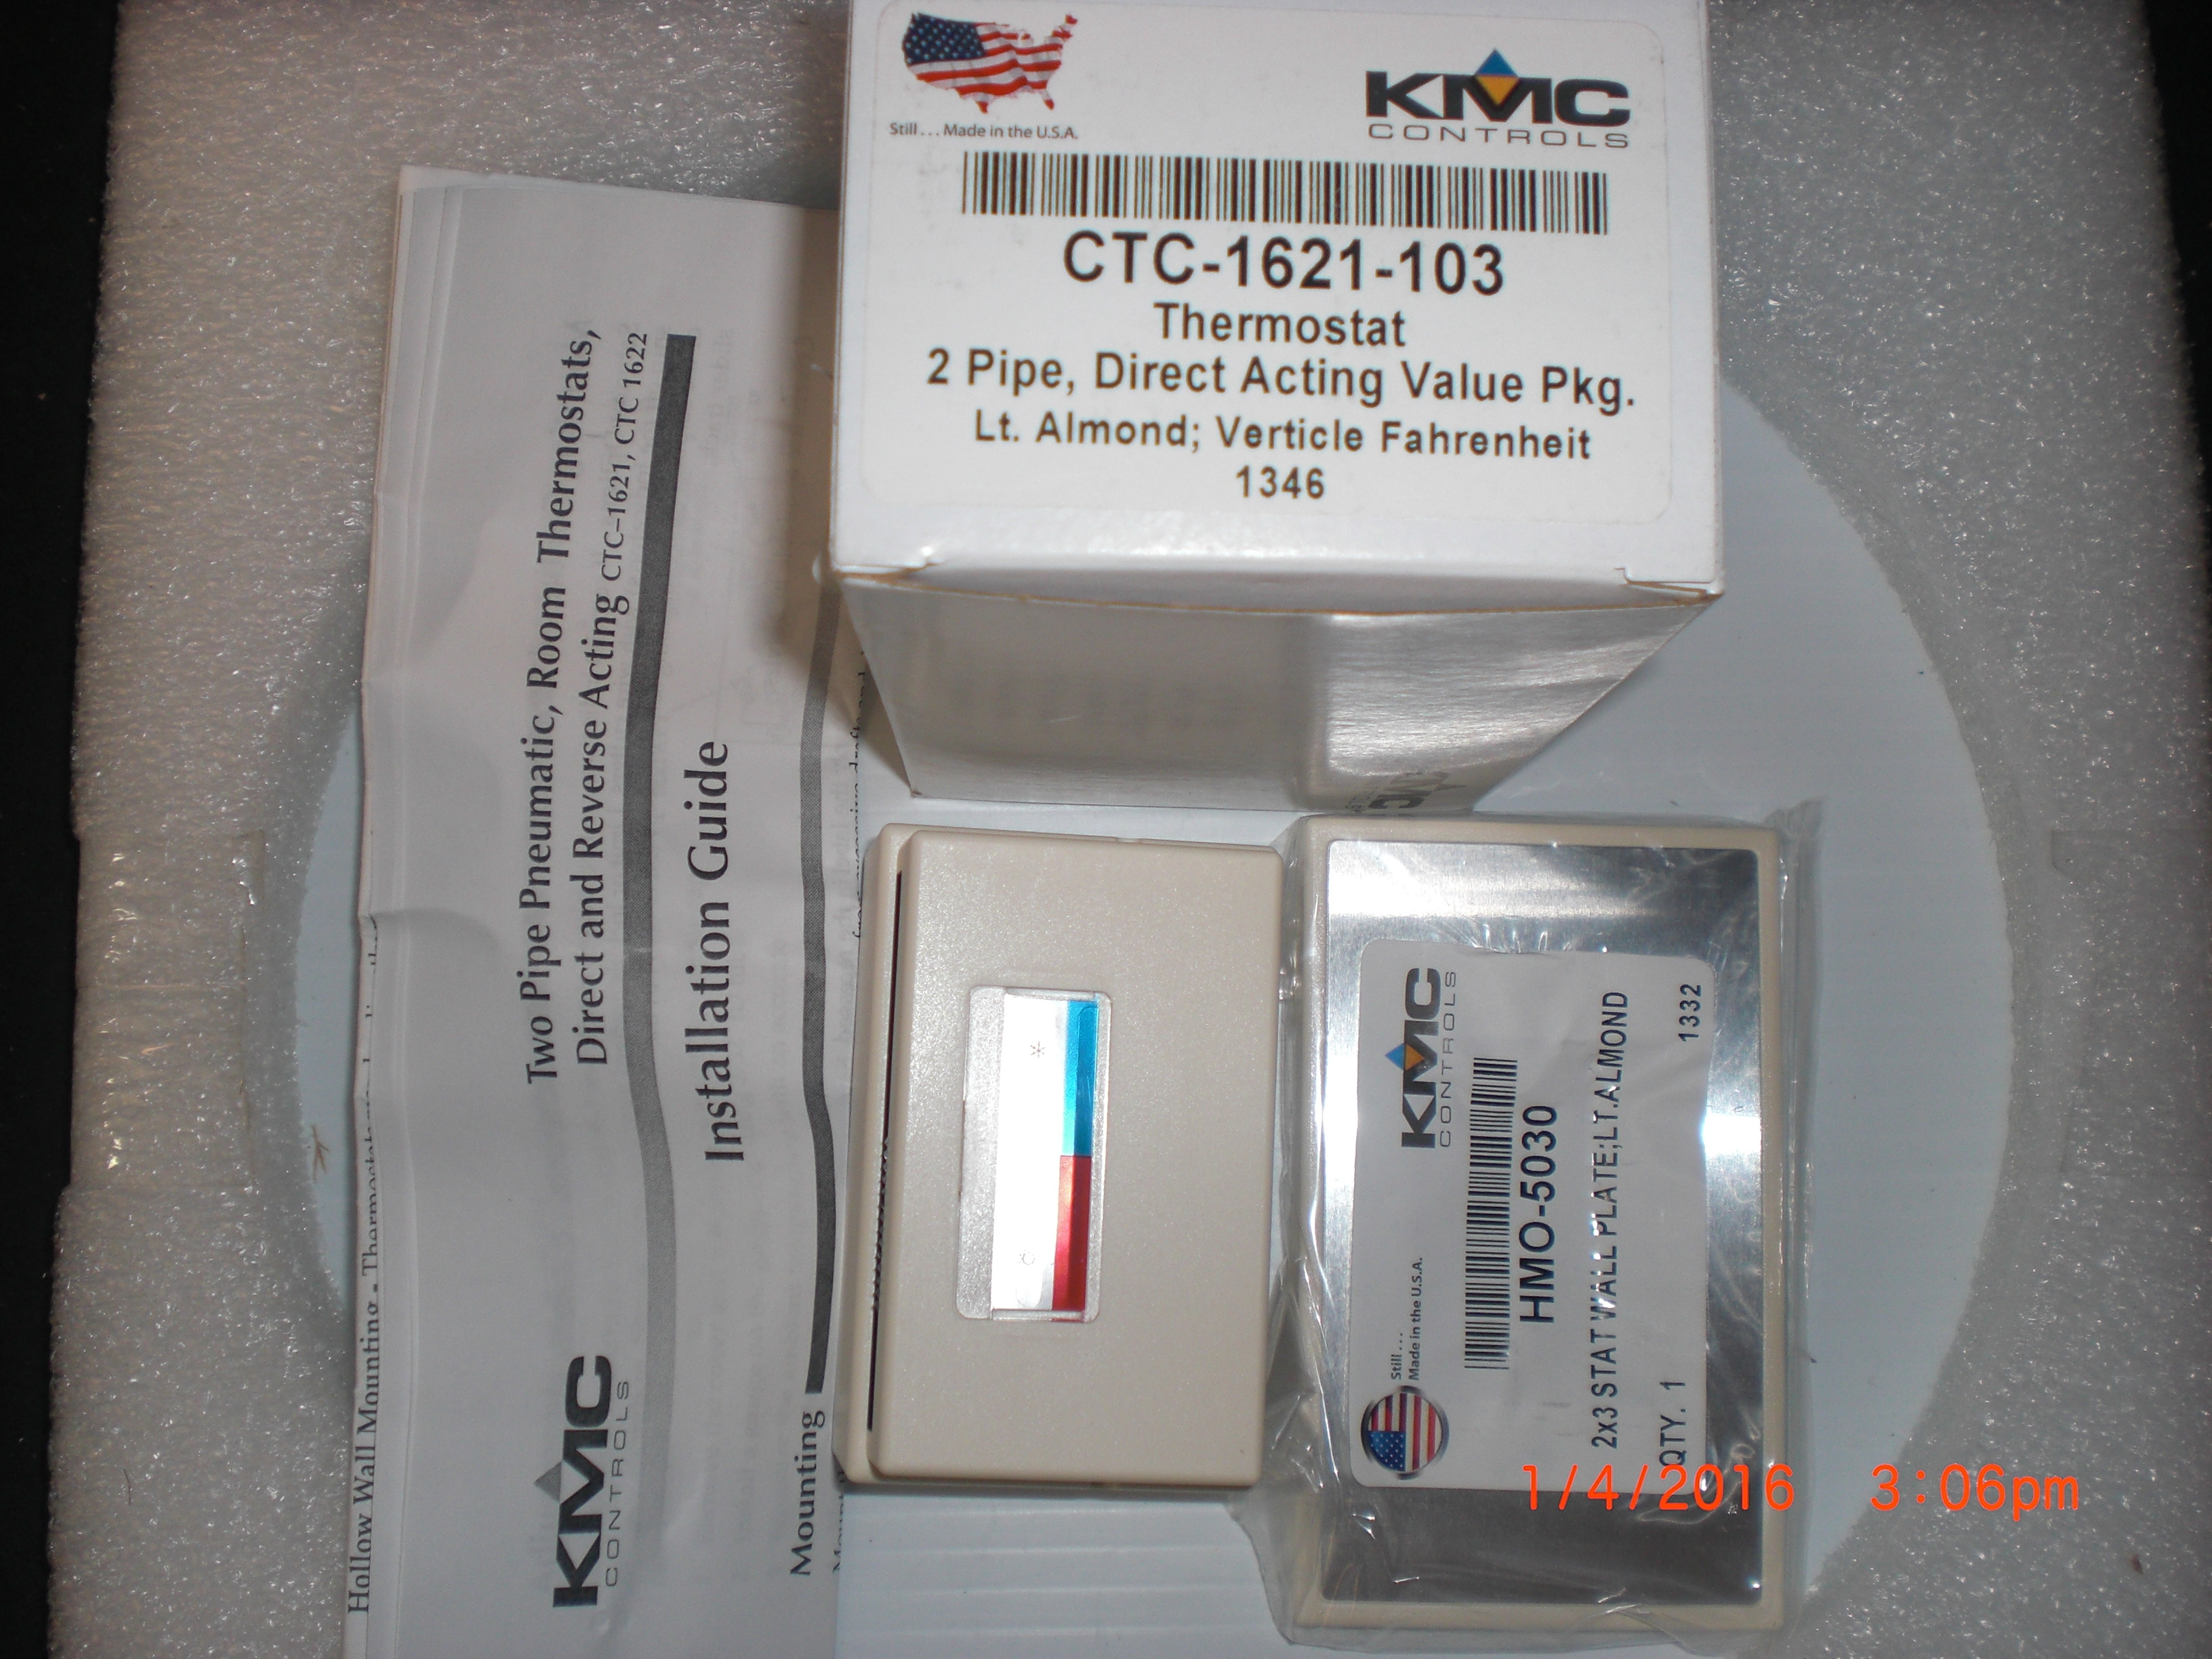 Instrument Thermostat 2 pipe Direct Acting Valve KMC Controls  CTC-1621-103